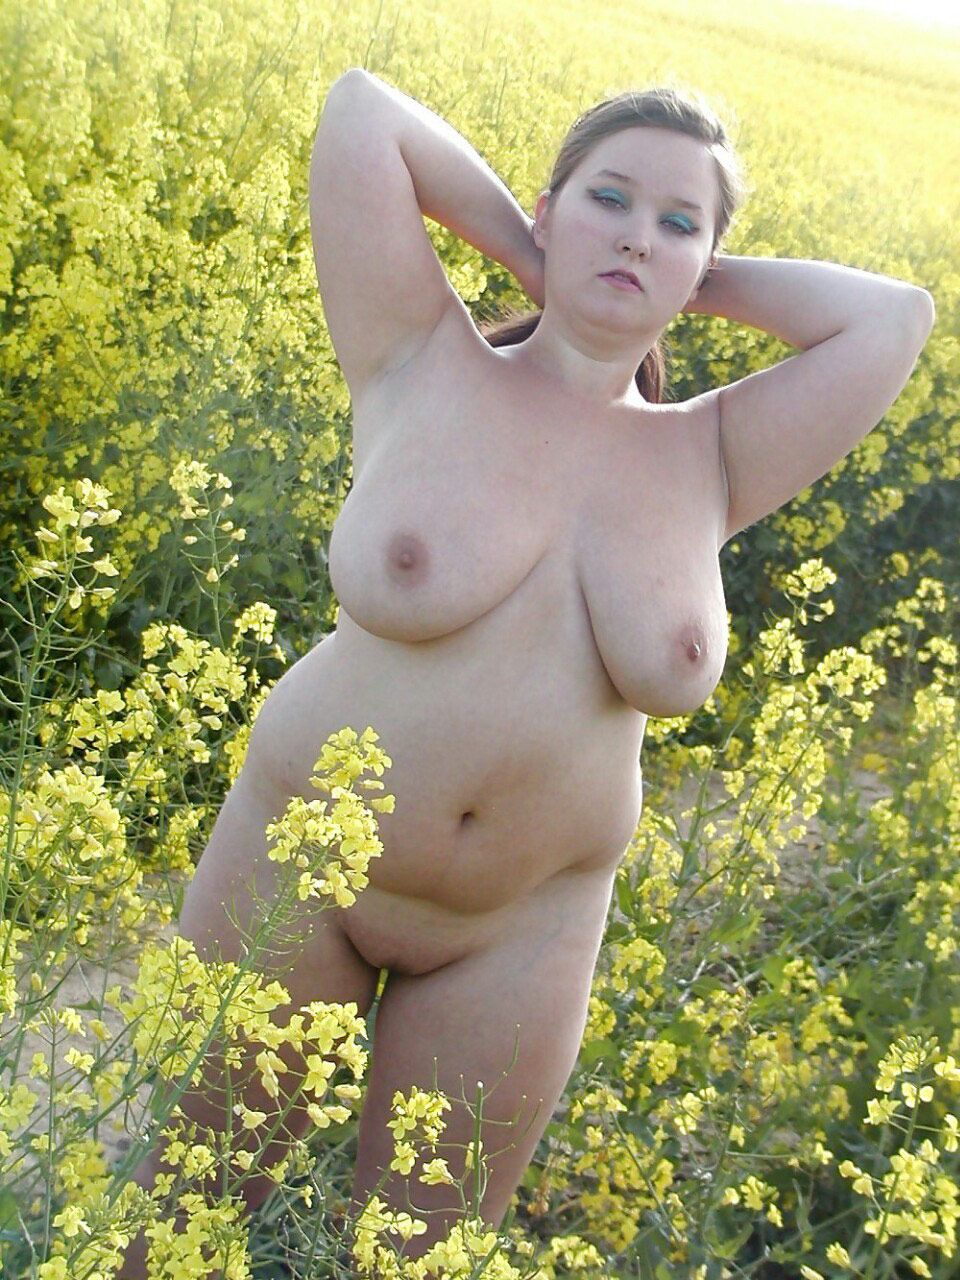 Does Bbw masterbeats sexy nude girl are not